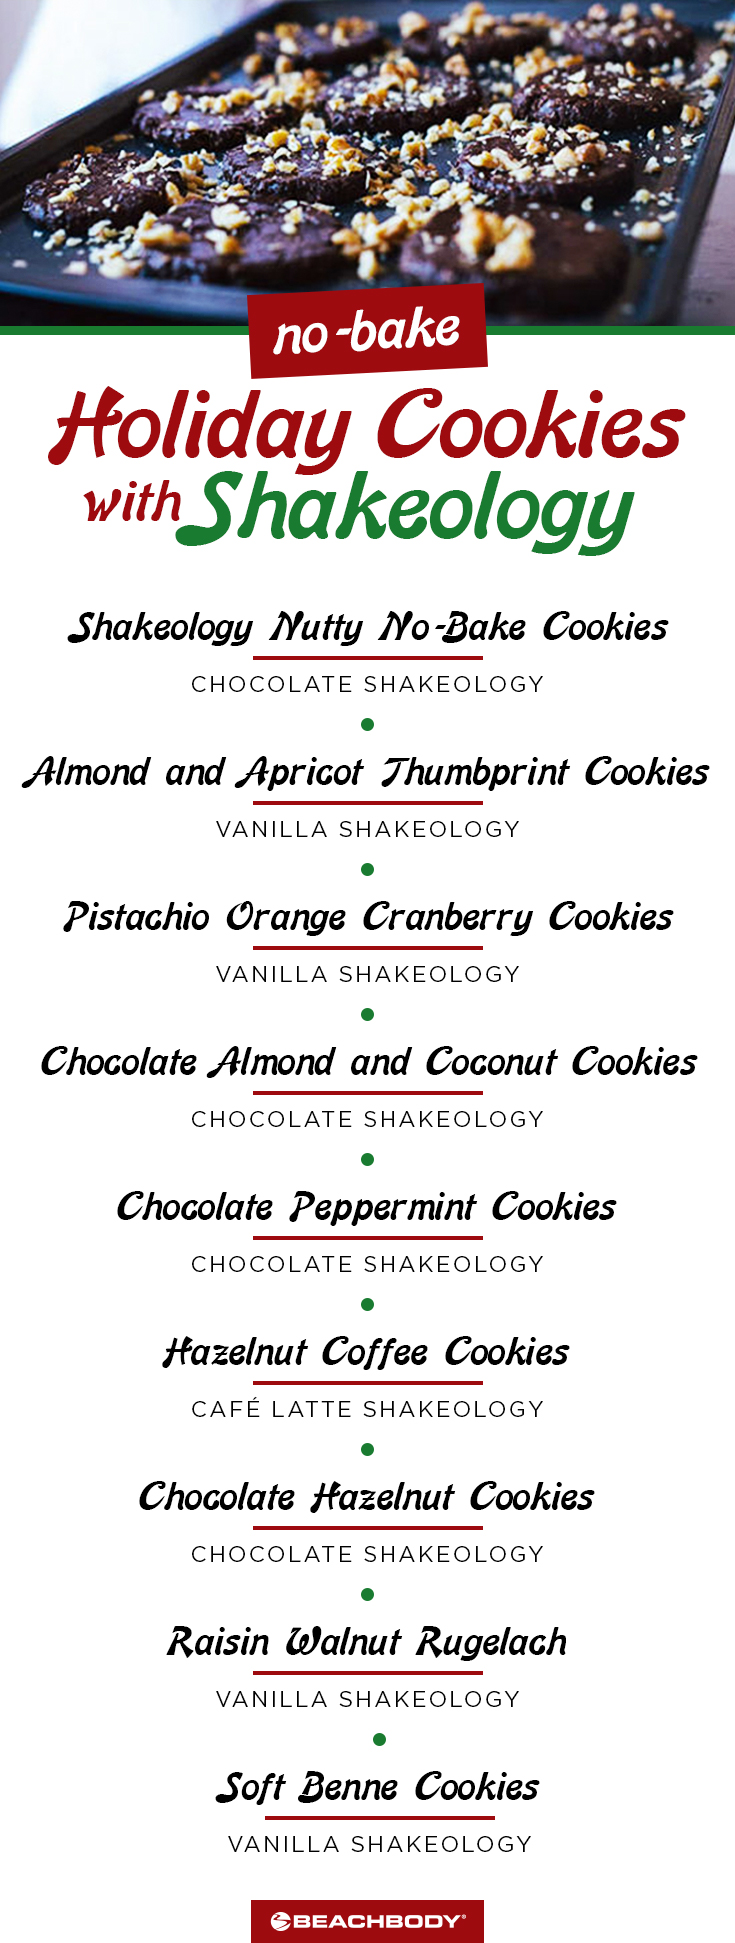 Healthy Recipes for No-Bake Holiday Cookies with Shakeology